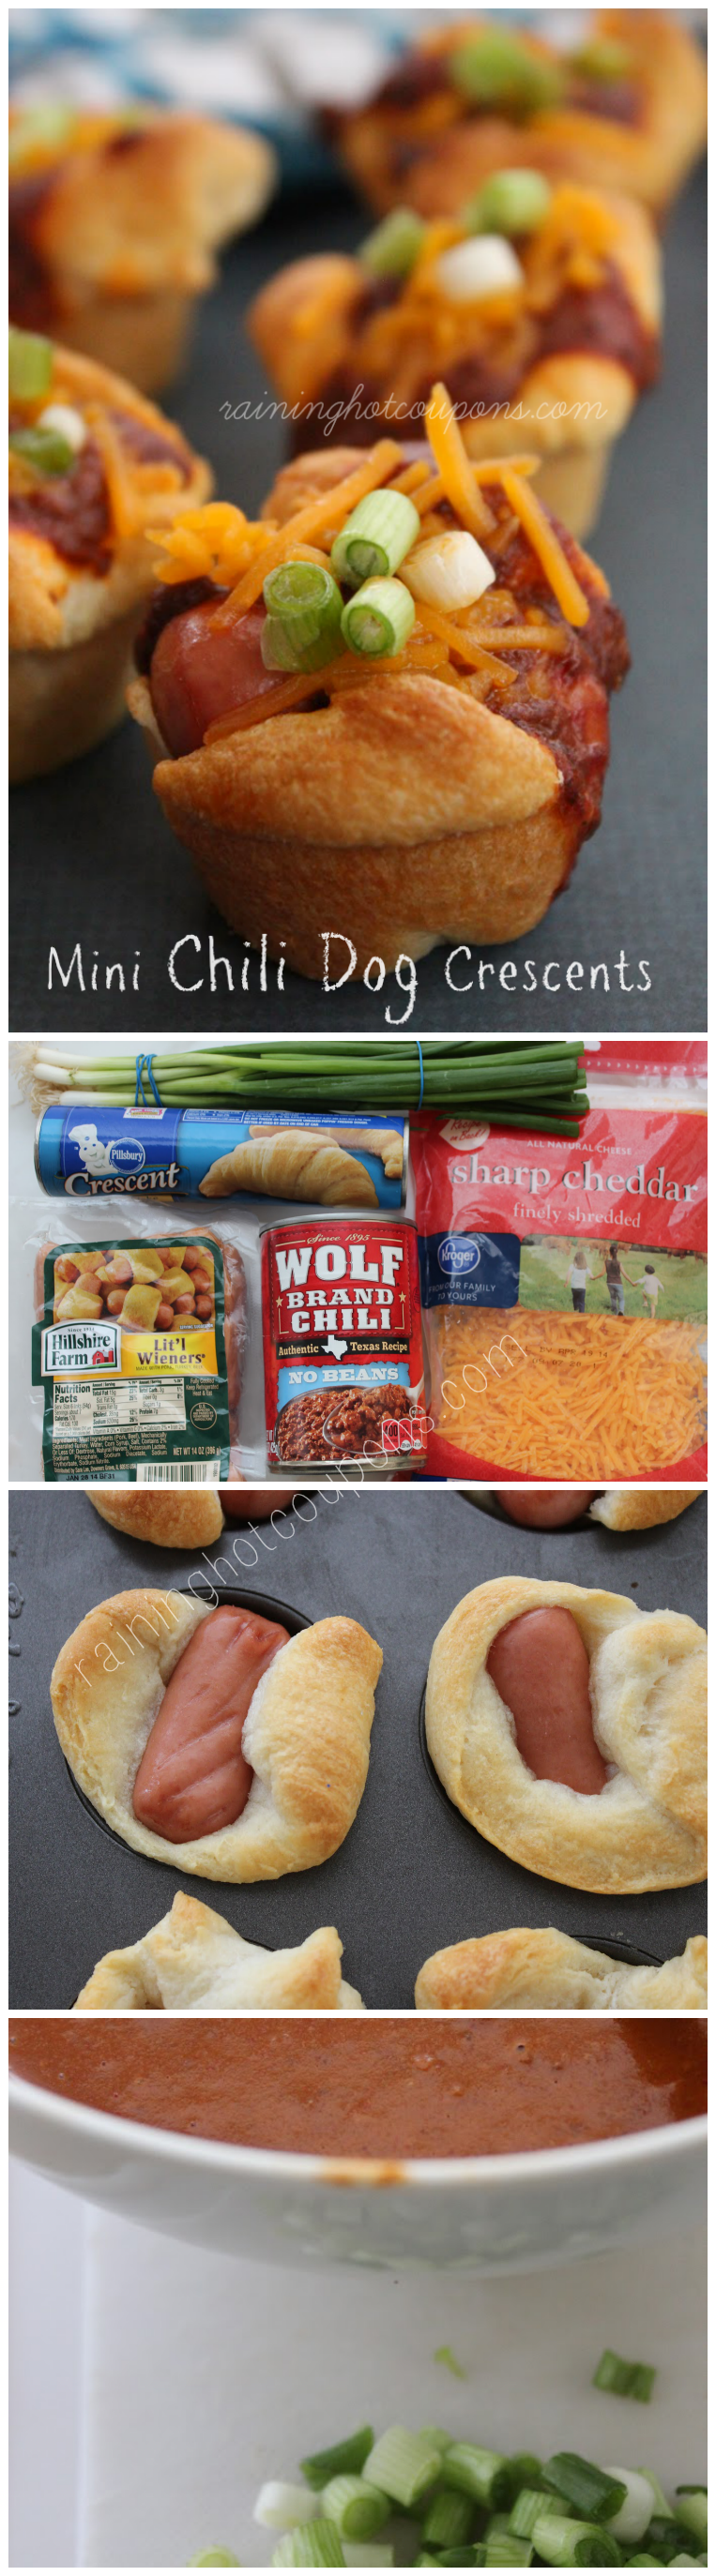 mini chili dog crescents collage